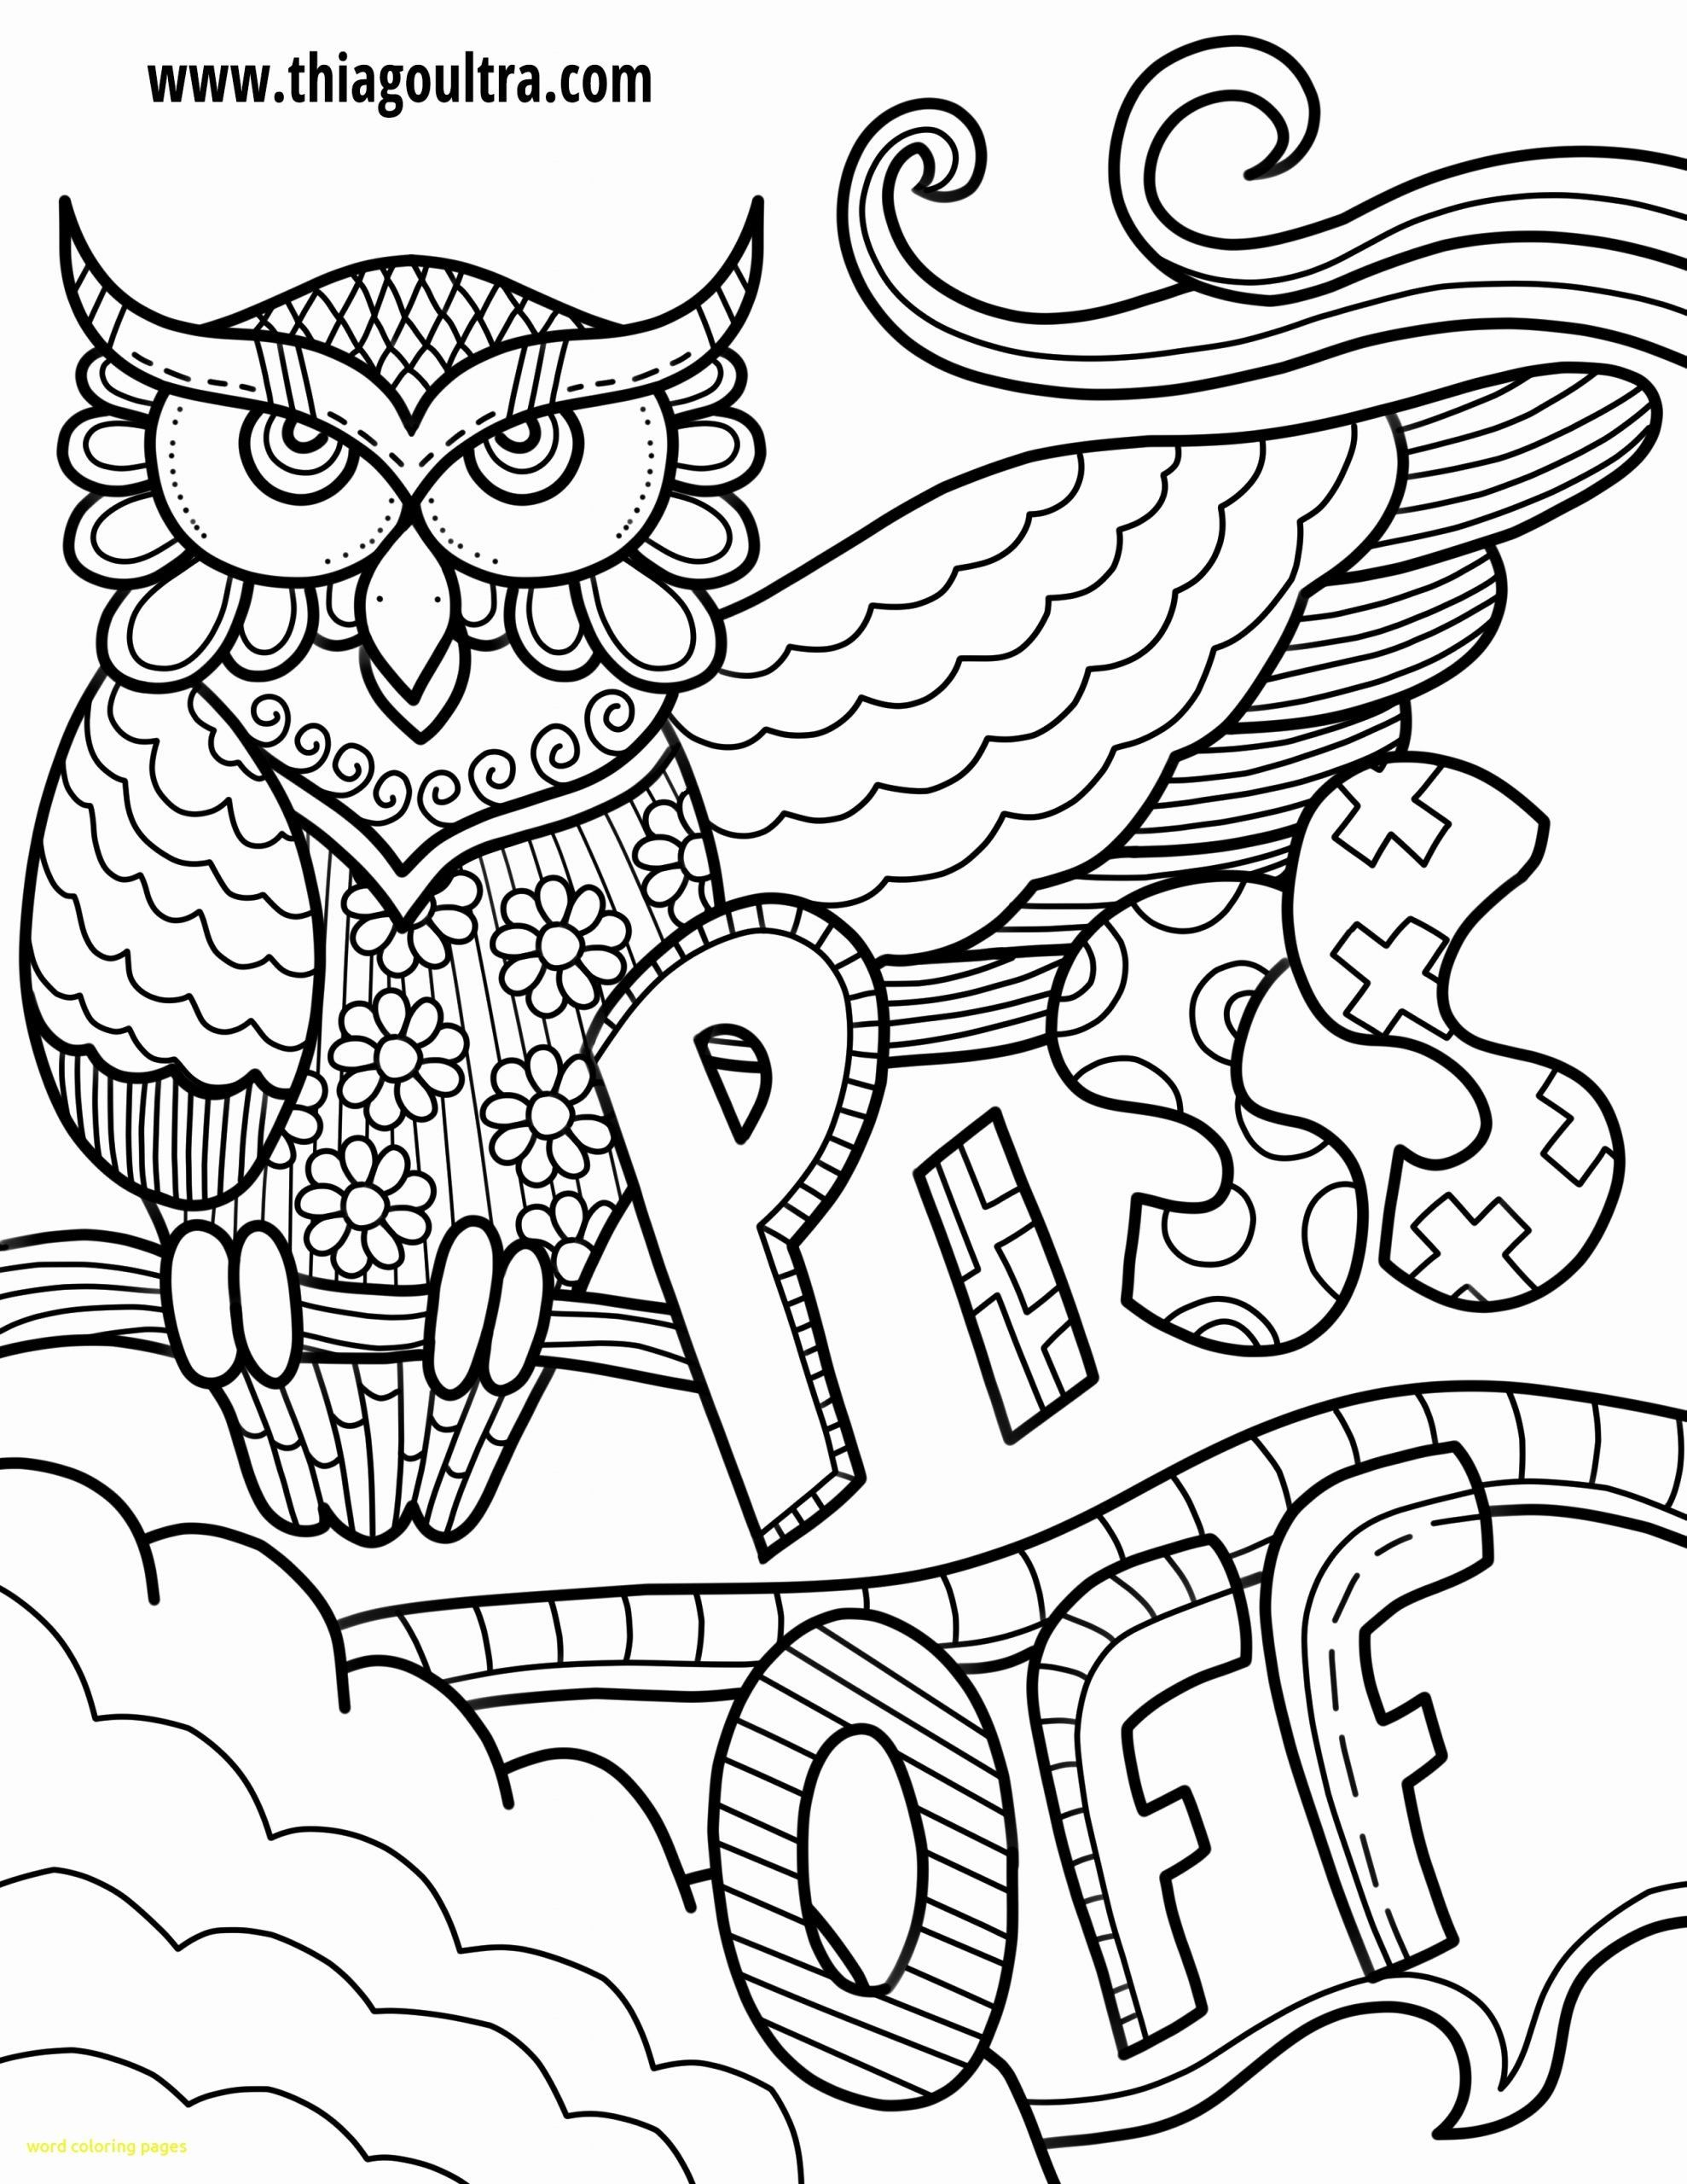 Pin On Top Coloring Pages Ideas Of My Favorite